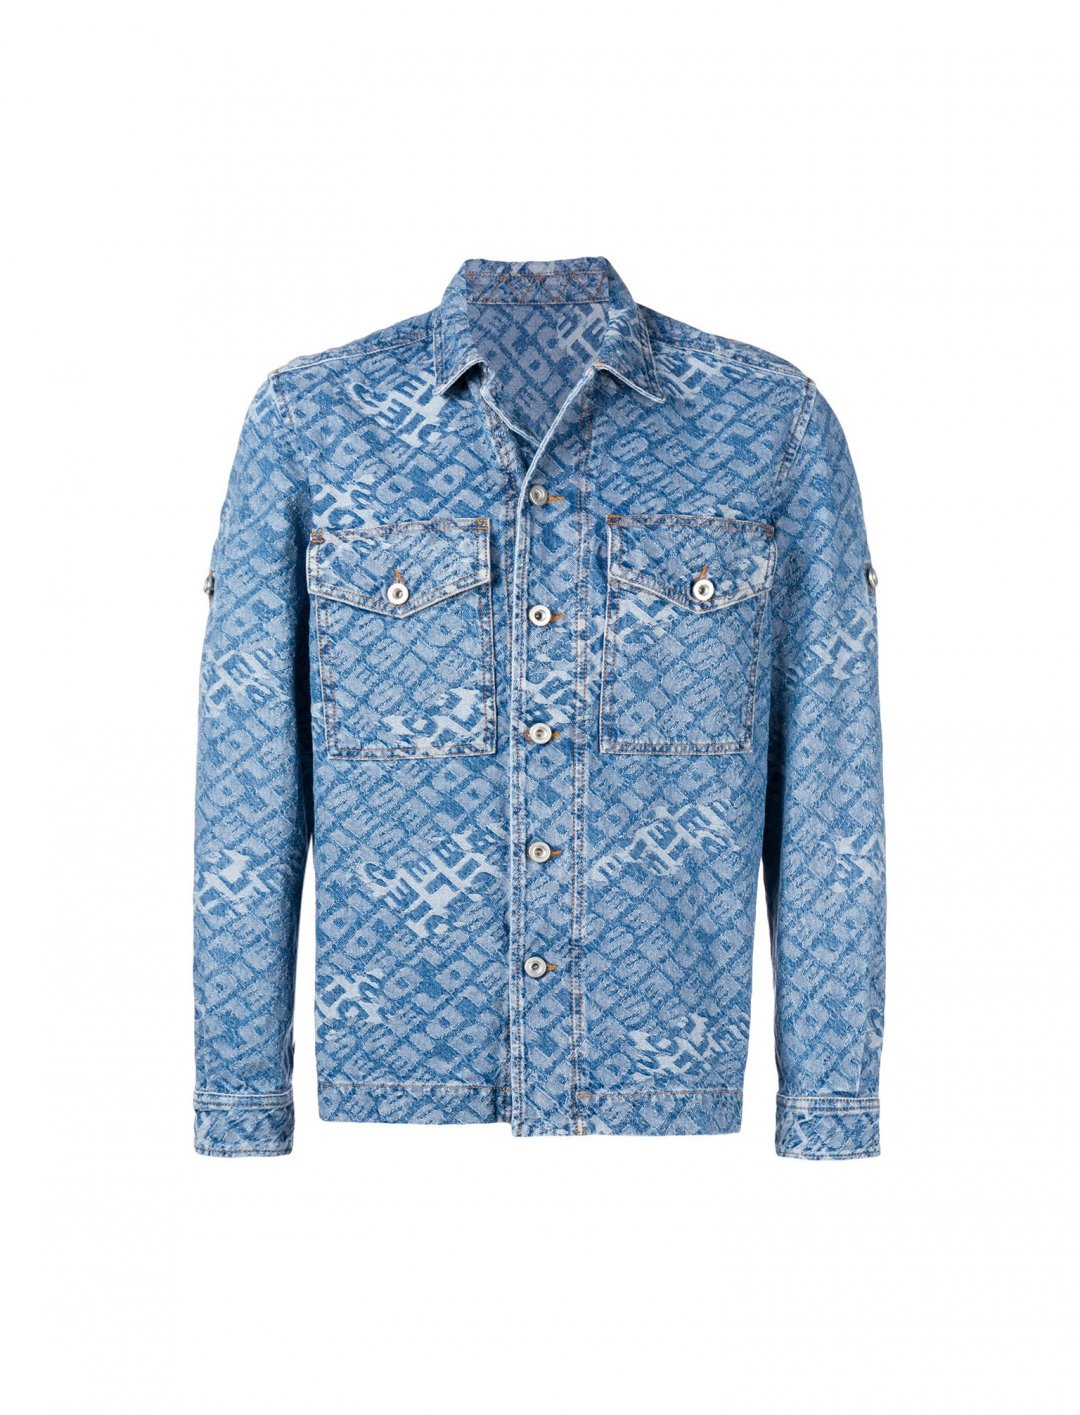 "Lotto Boyzz' Denim Shirt Jacket {""id"":5,""product_section_id"":1,""name"":""Clothing"",""order"":5} Diesel"